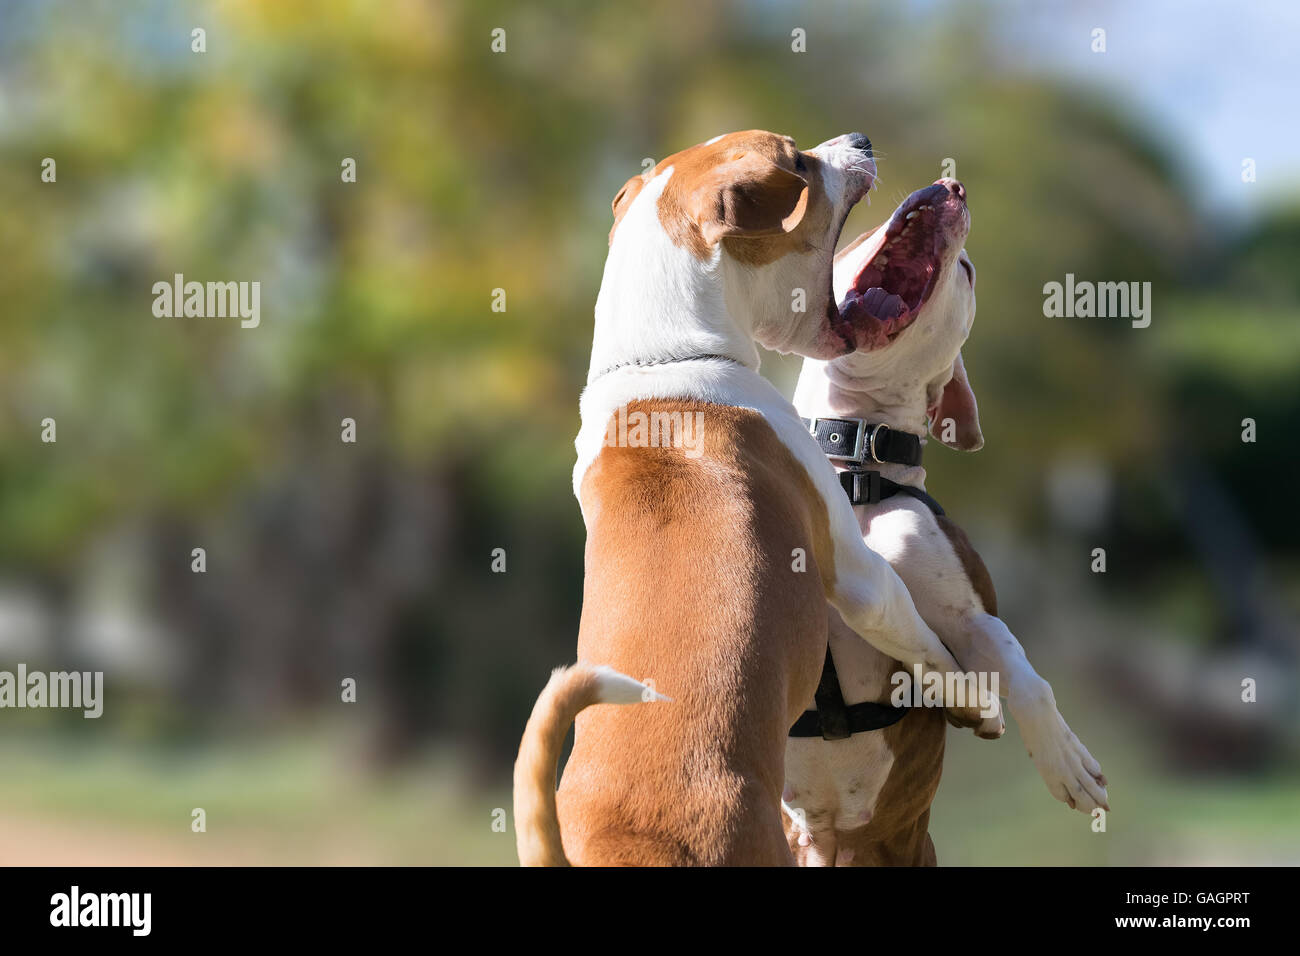 Two dogs in a park against each other. A beautiful face to face moment of two dogs playing. - Stock Image